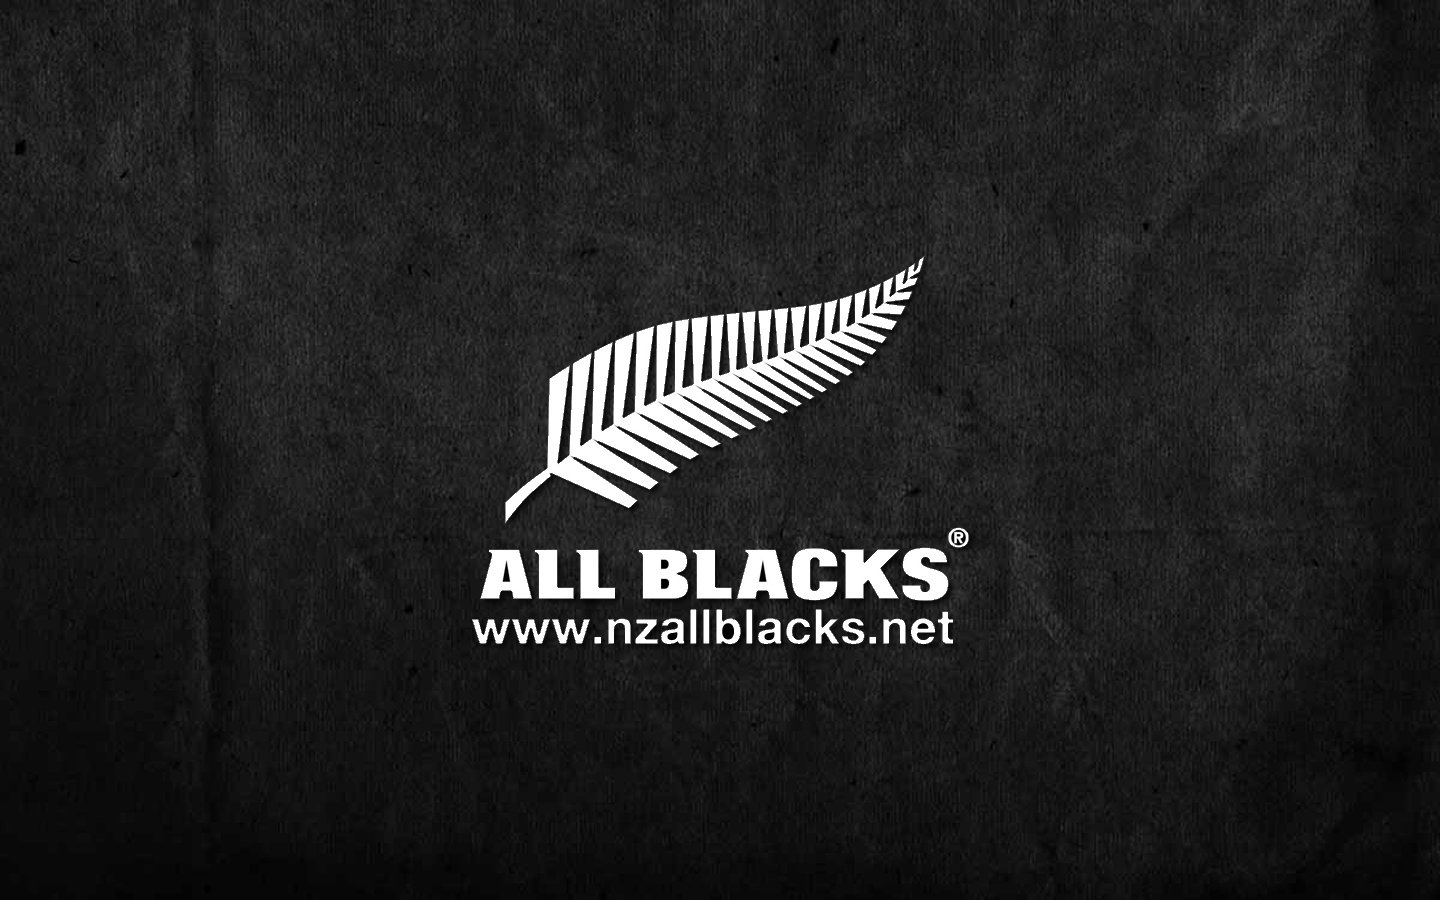 73 New Zealand All Blacks Wallpaper On Wallpapersafari